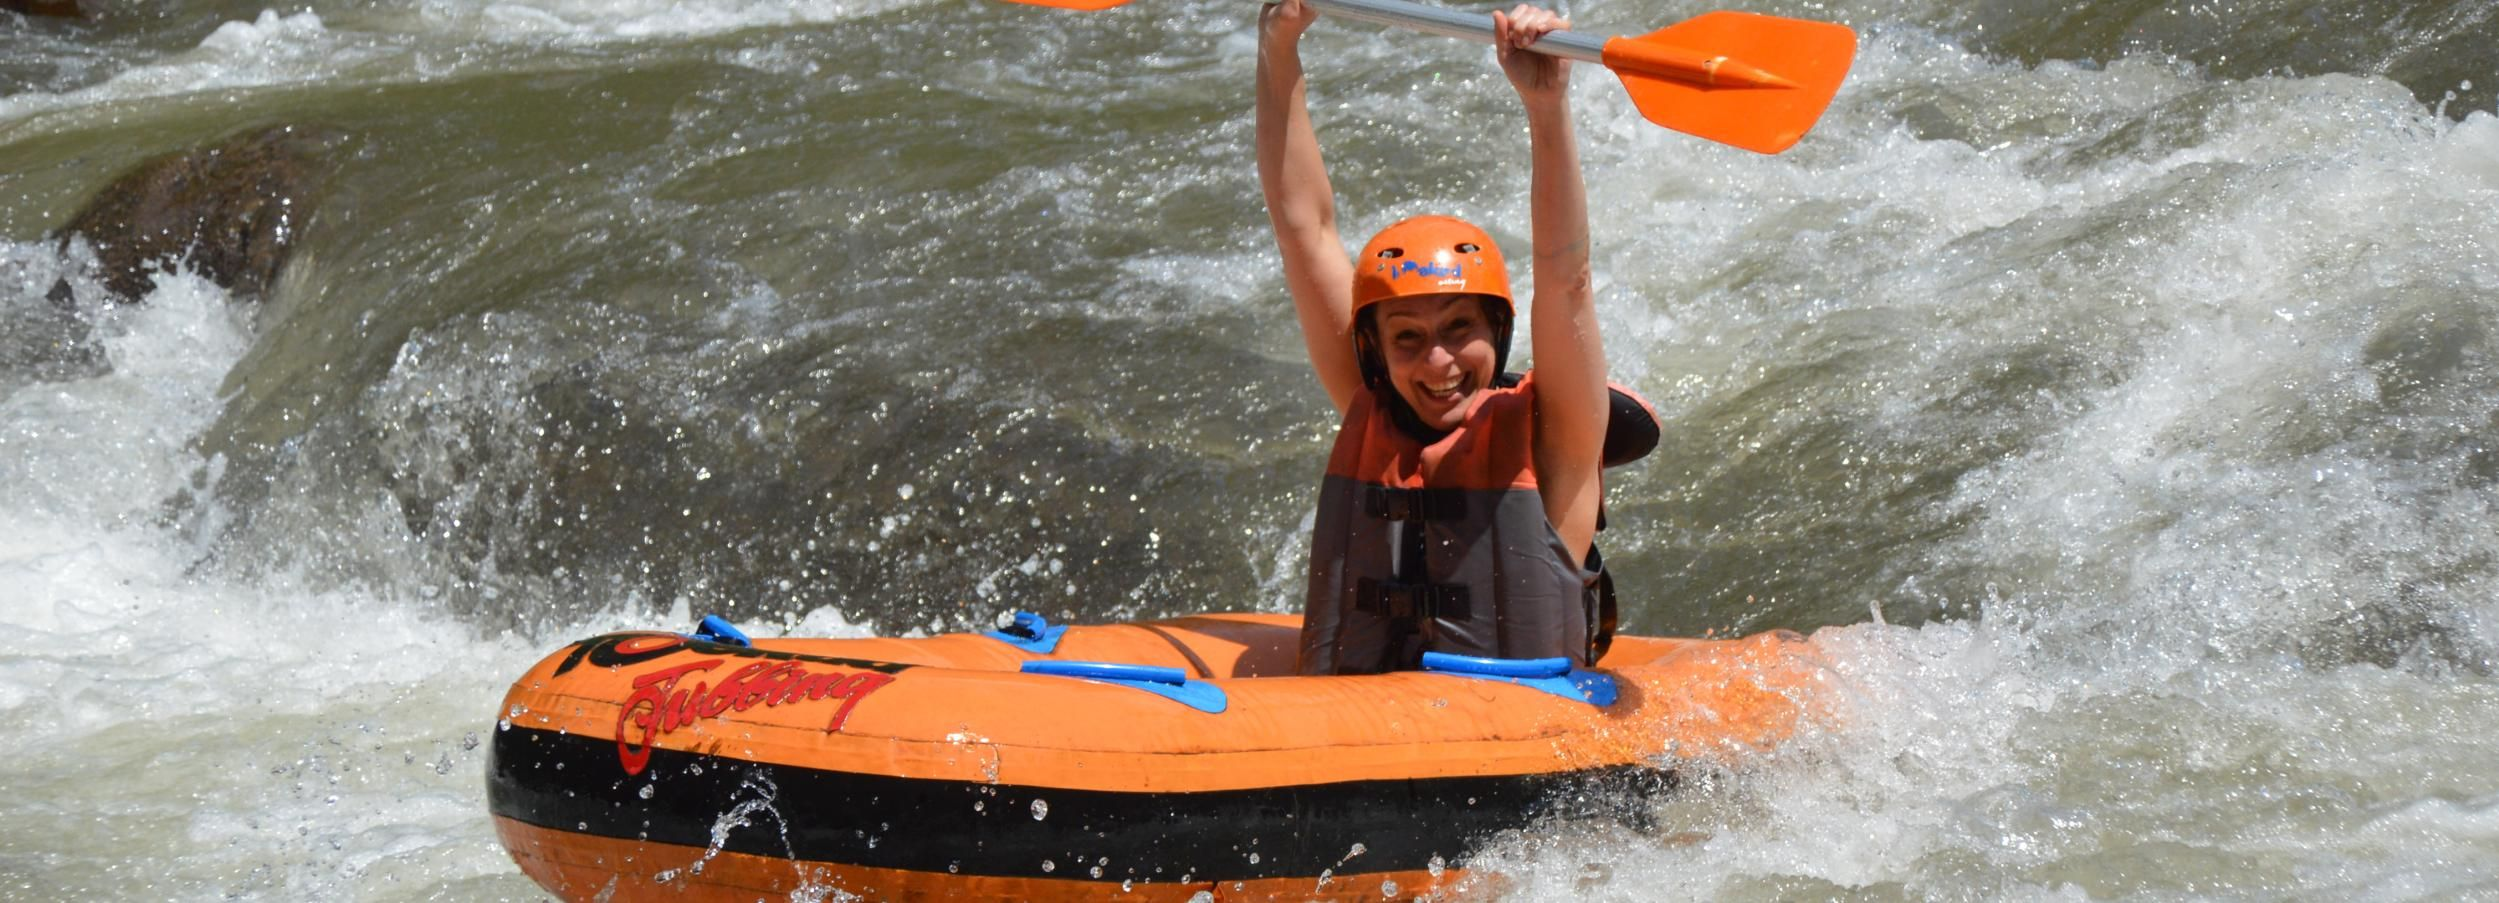 Ayung River: All-Inclusive Tubing Adventure with Lunch